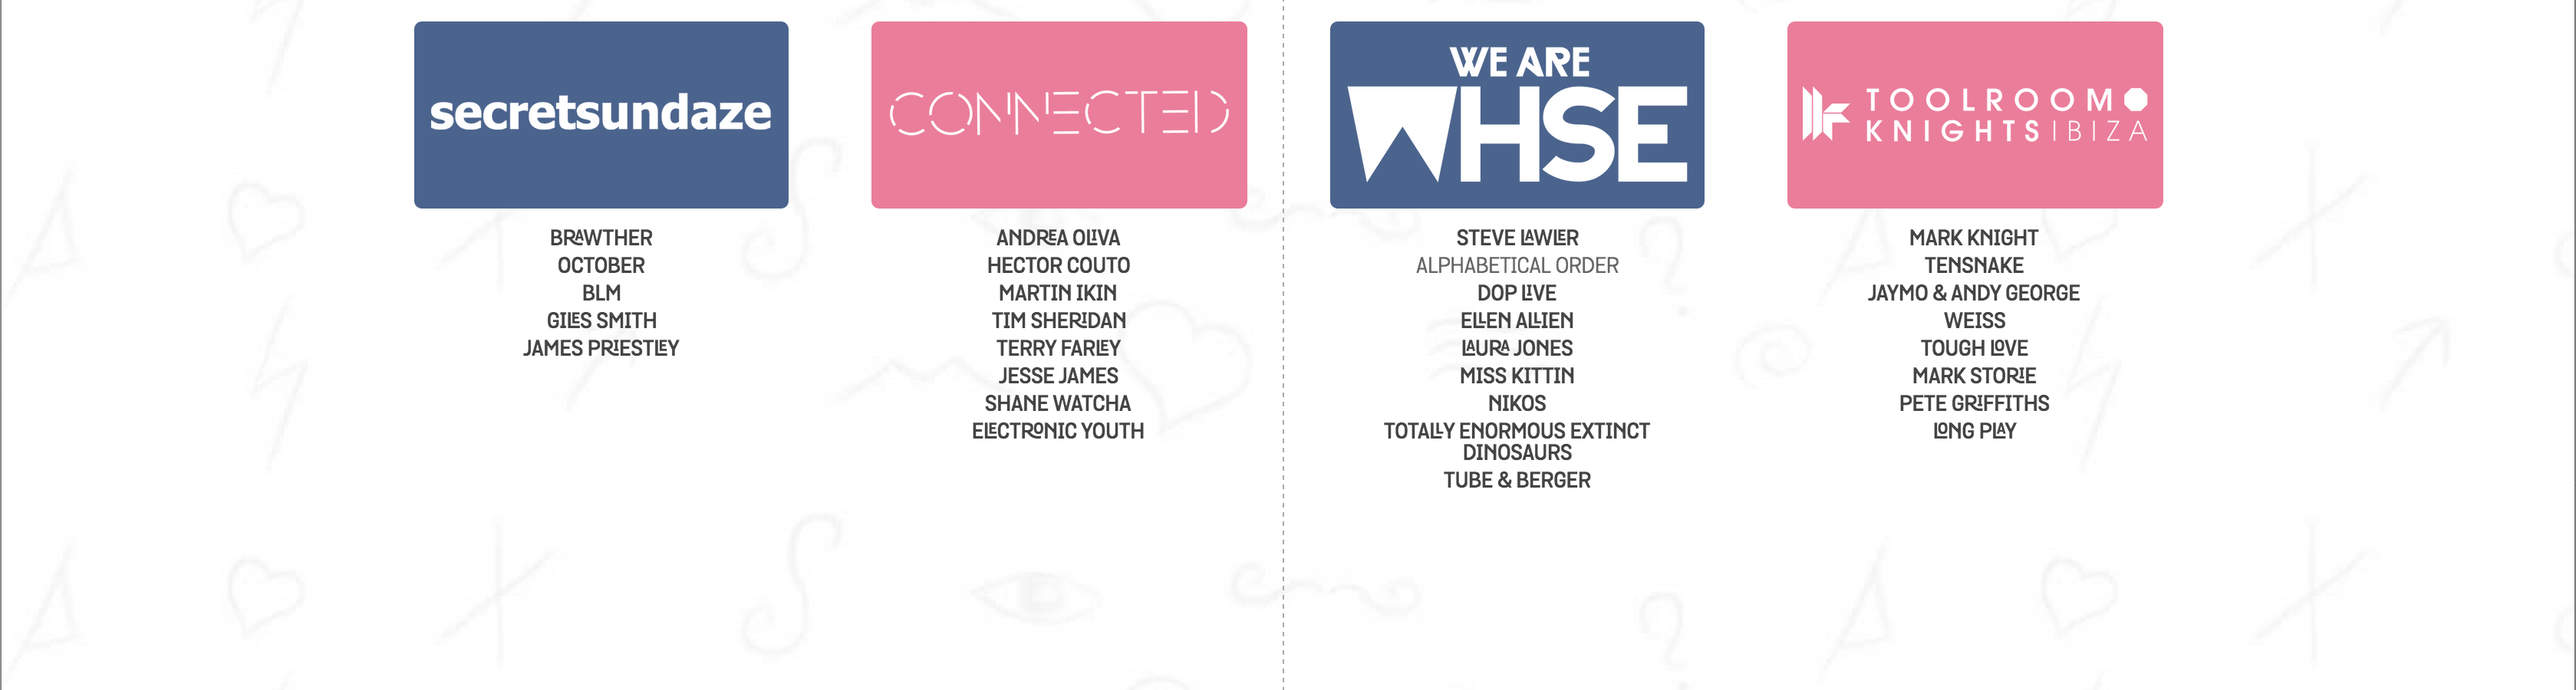 We Are FSTVL - Line Up